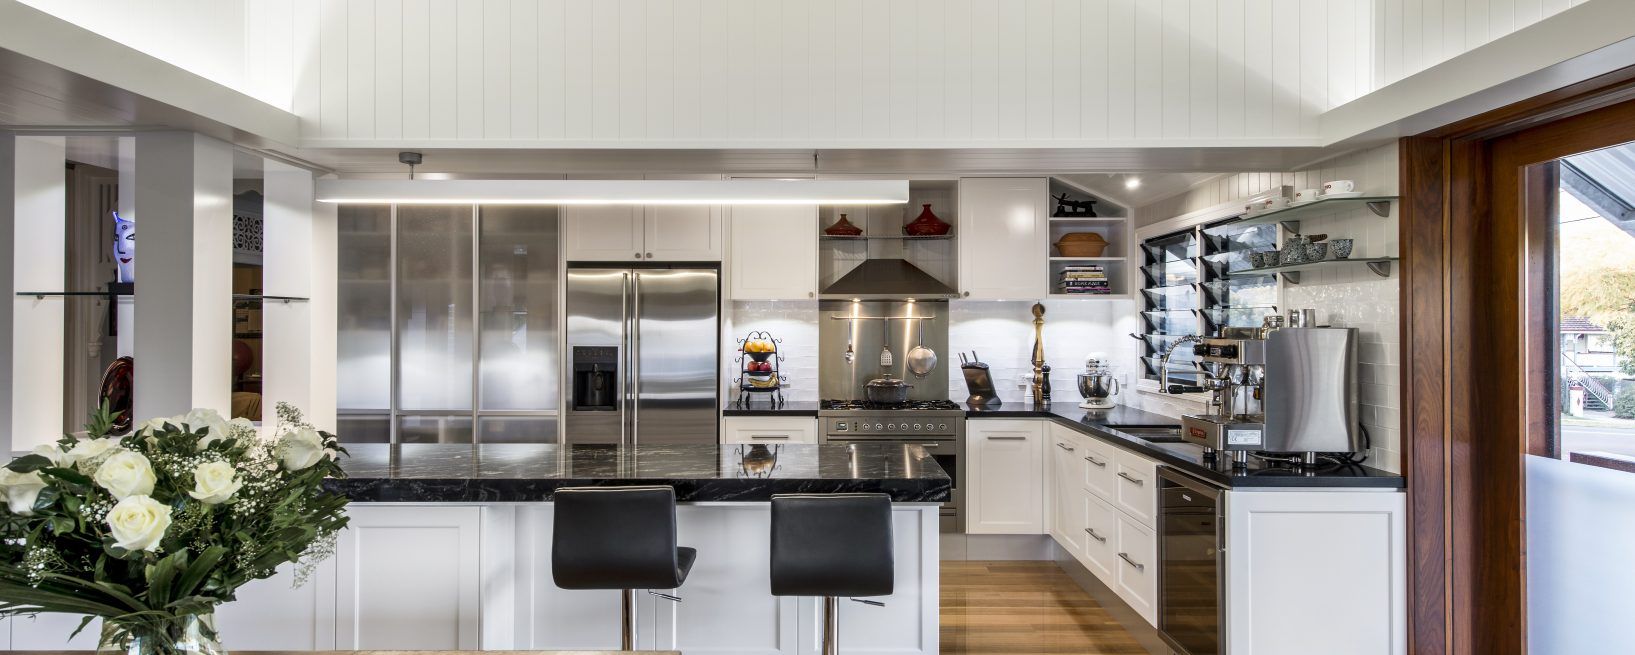 Kitchen Renovation Brisbane Australia